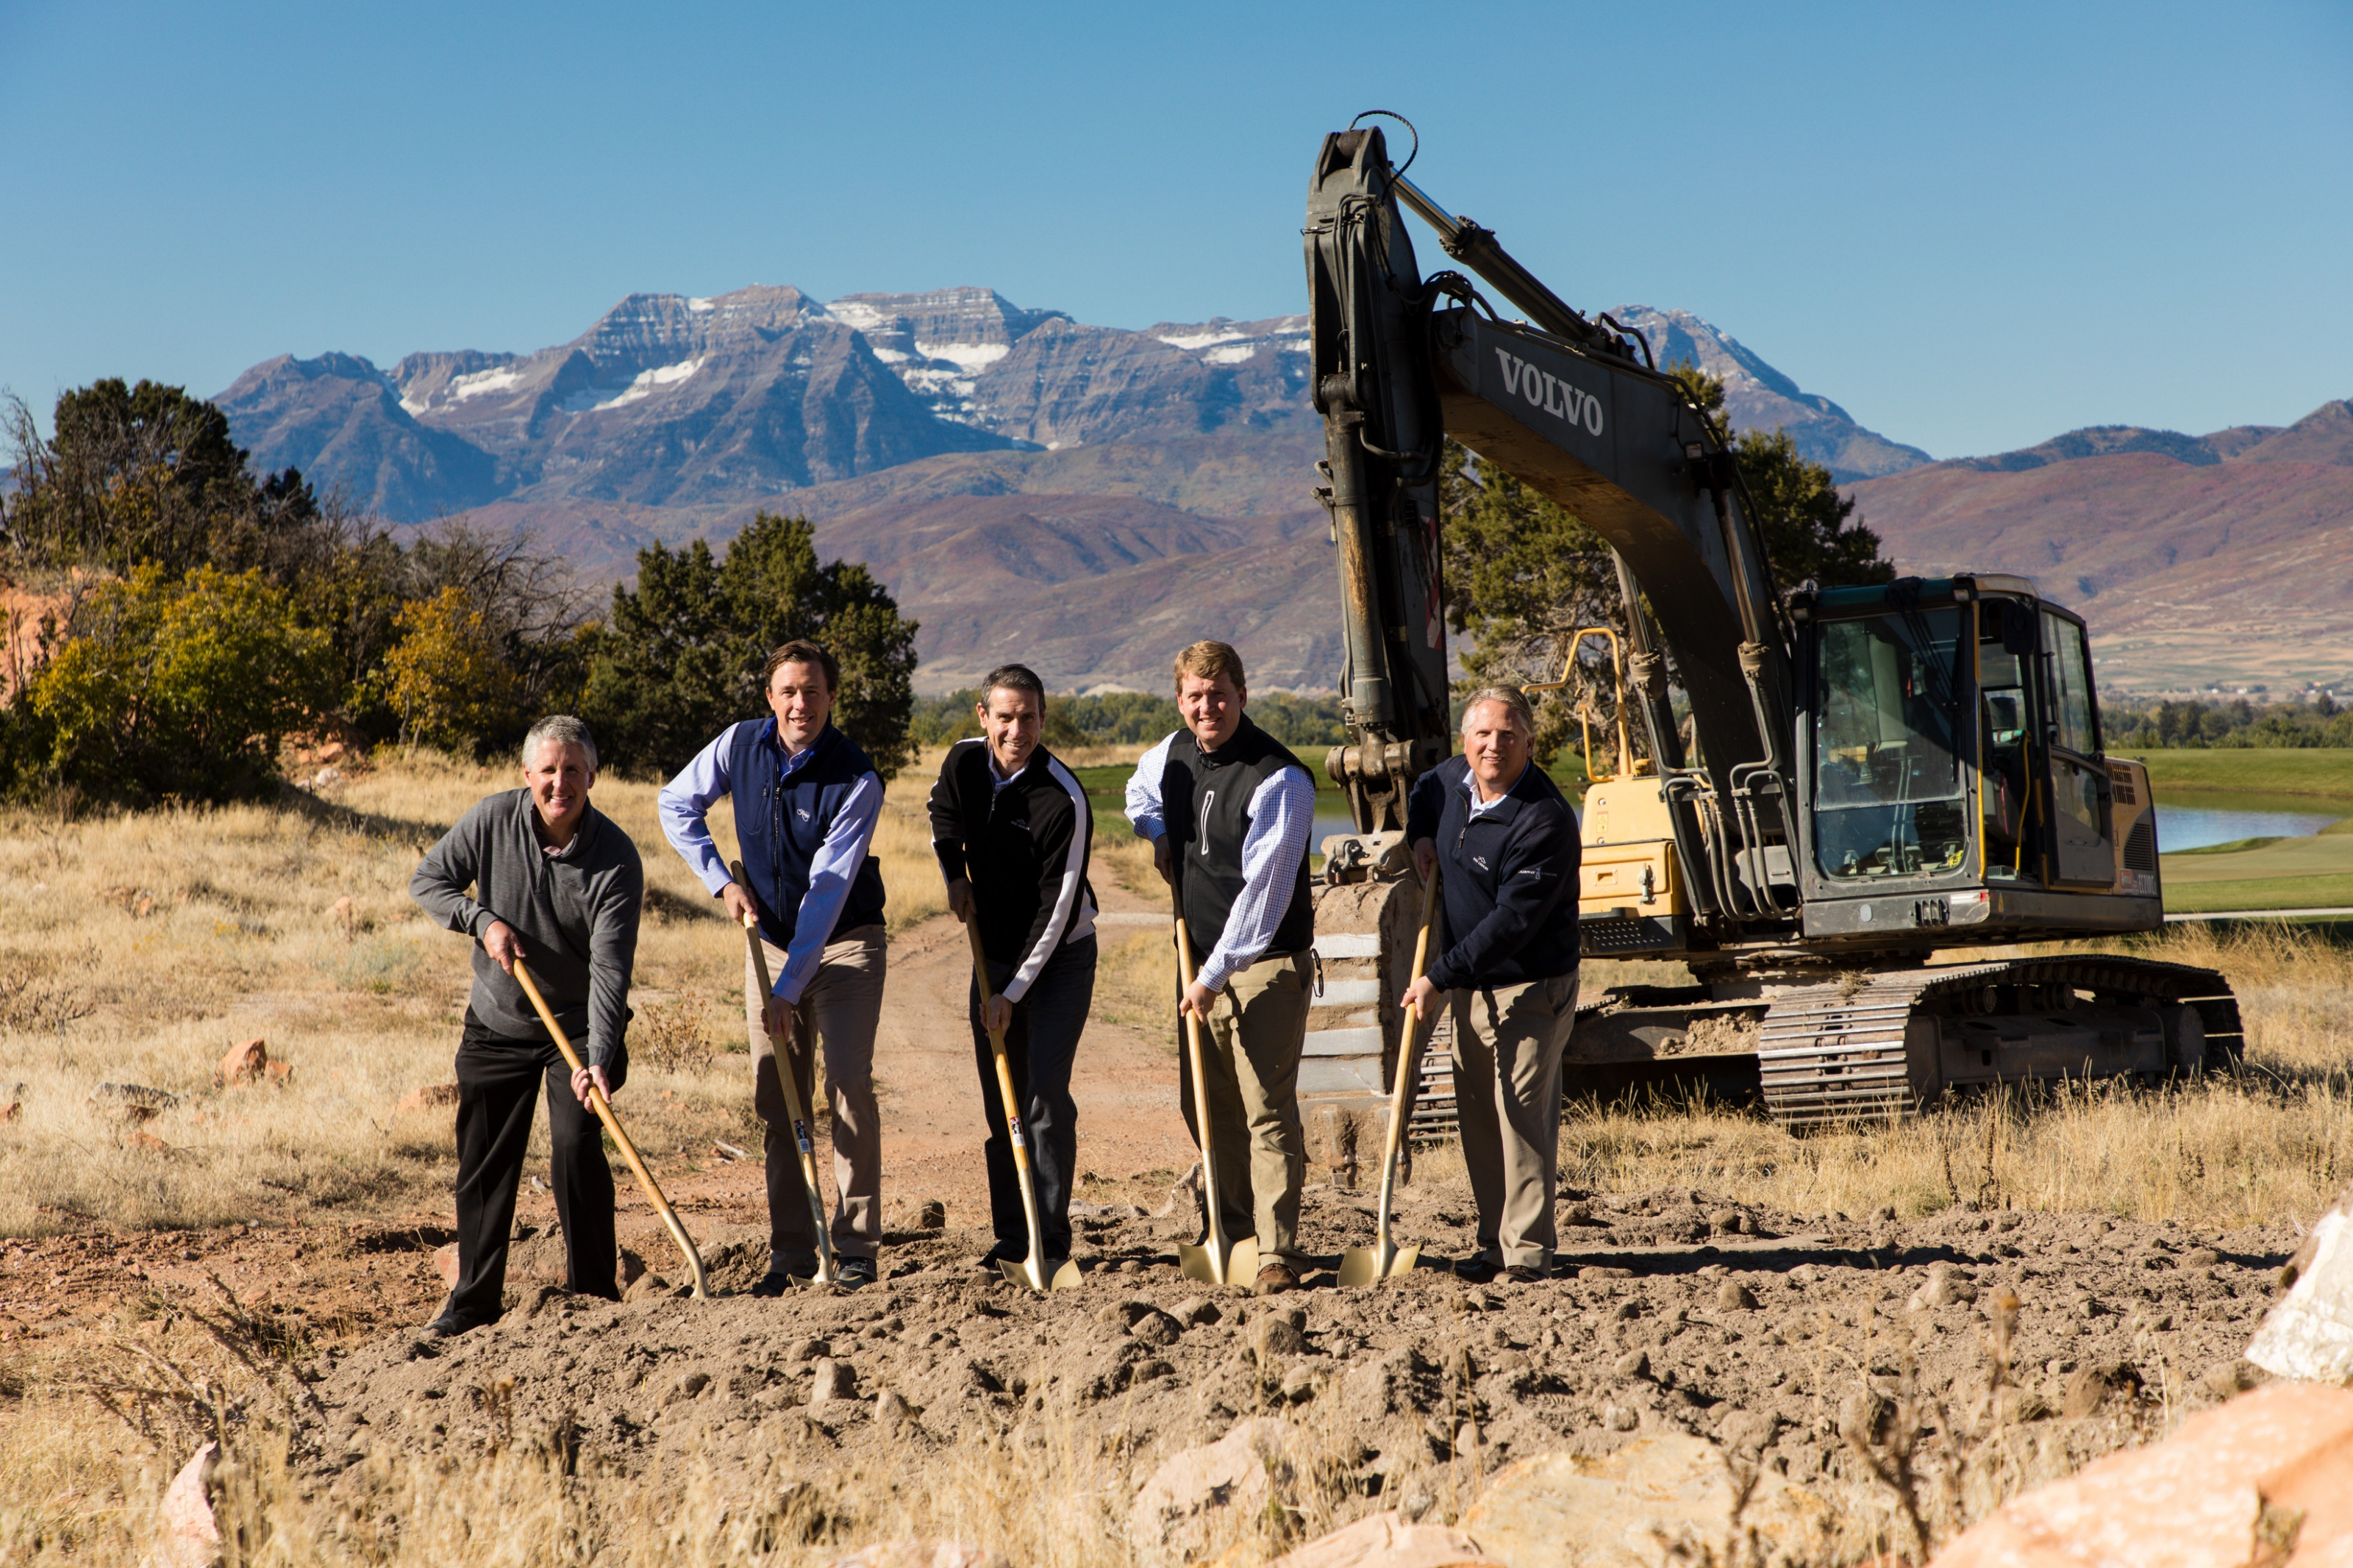 Red Ledges Celebrates 10th Anniversary with Groundbreaking for New Village Center